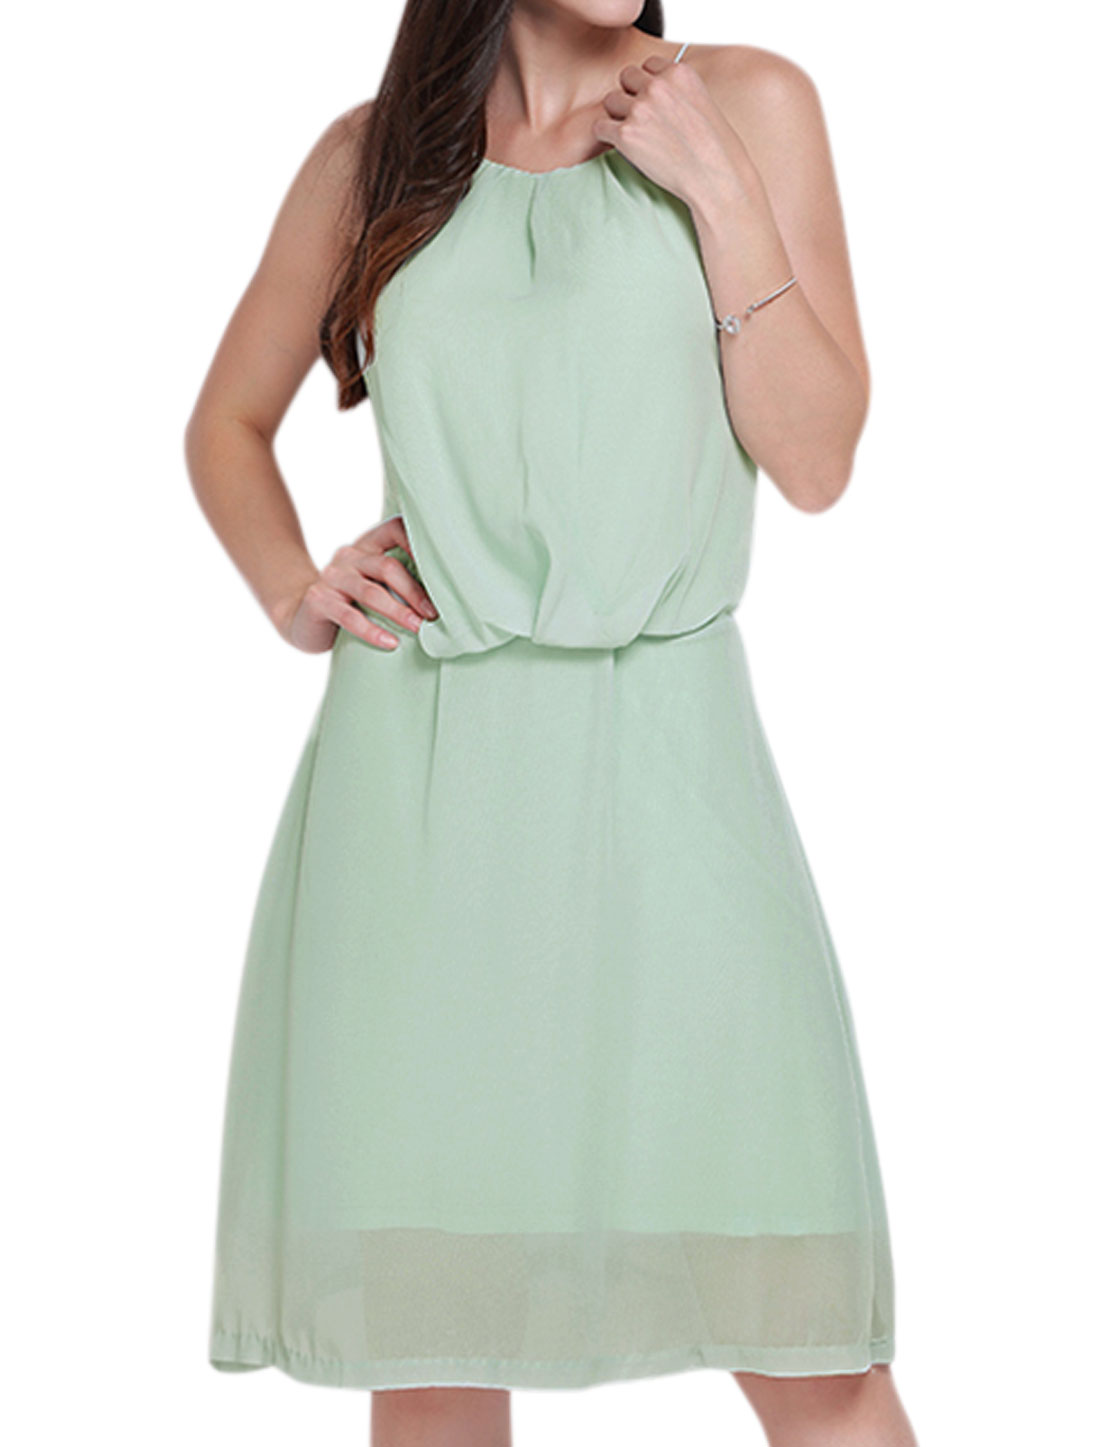 Women Spaghetti Straps Lace Panel Open Back Chiffon Dress Green M